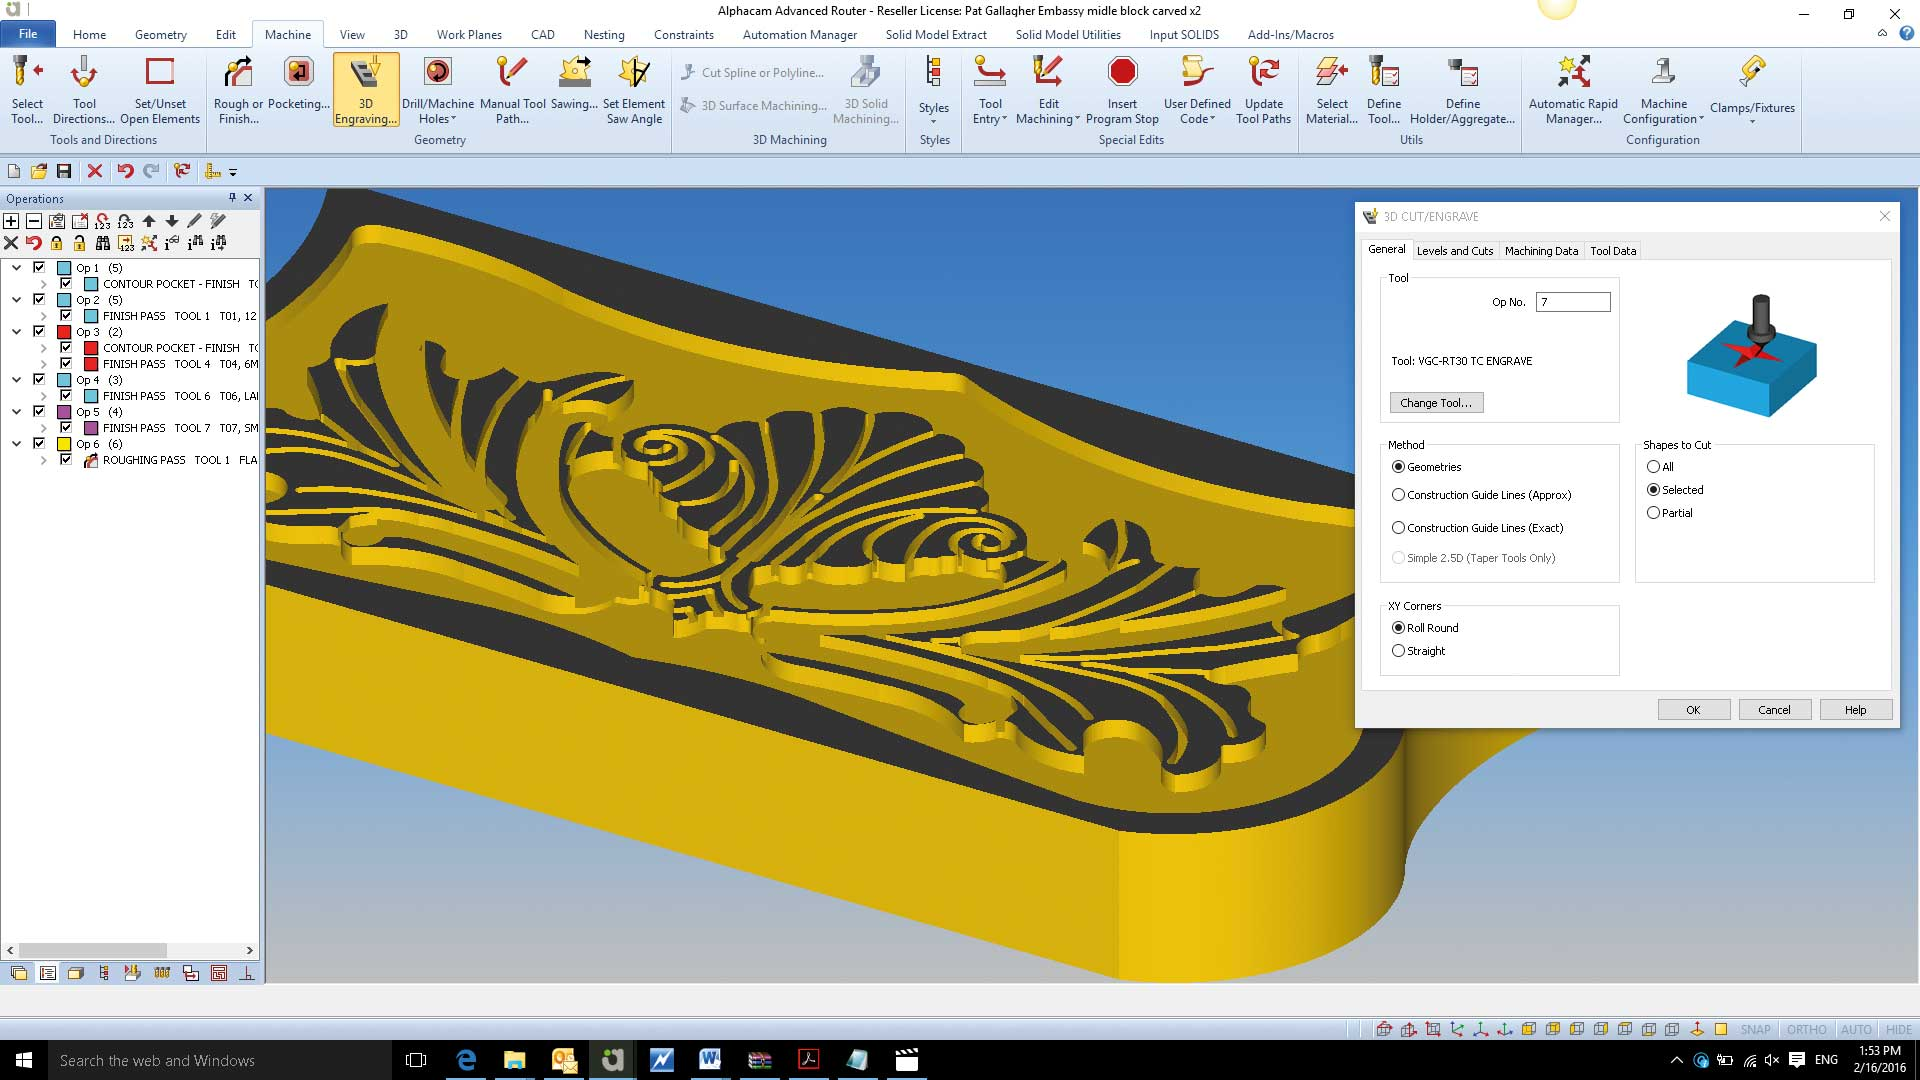 ImageGrafix Software FZCO - AlphaCAM Adavance Router 3D Cut Screen Overview